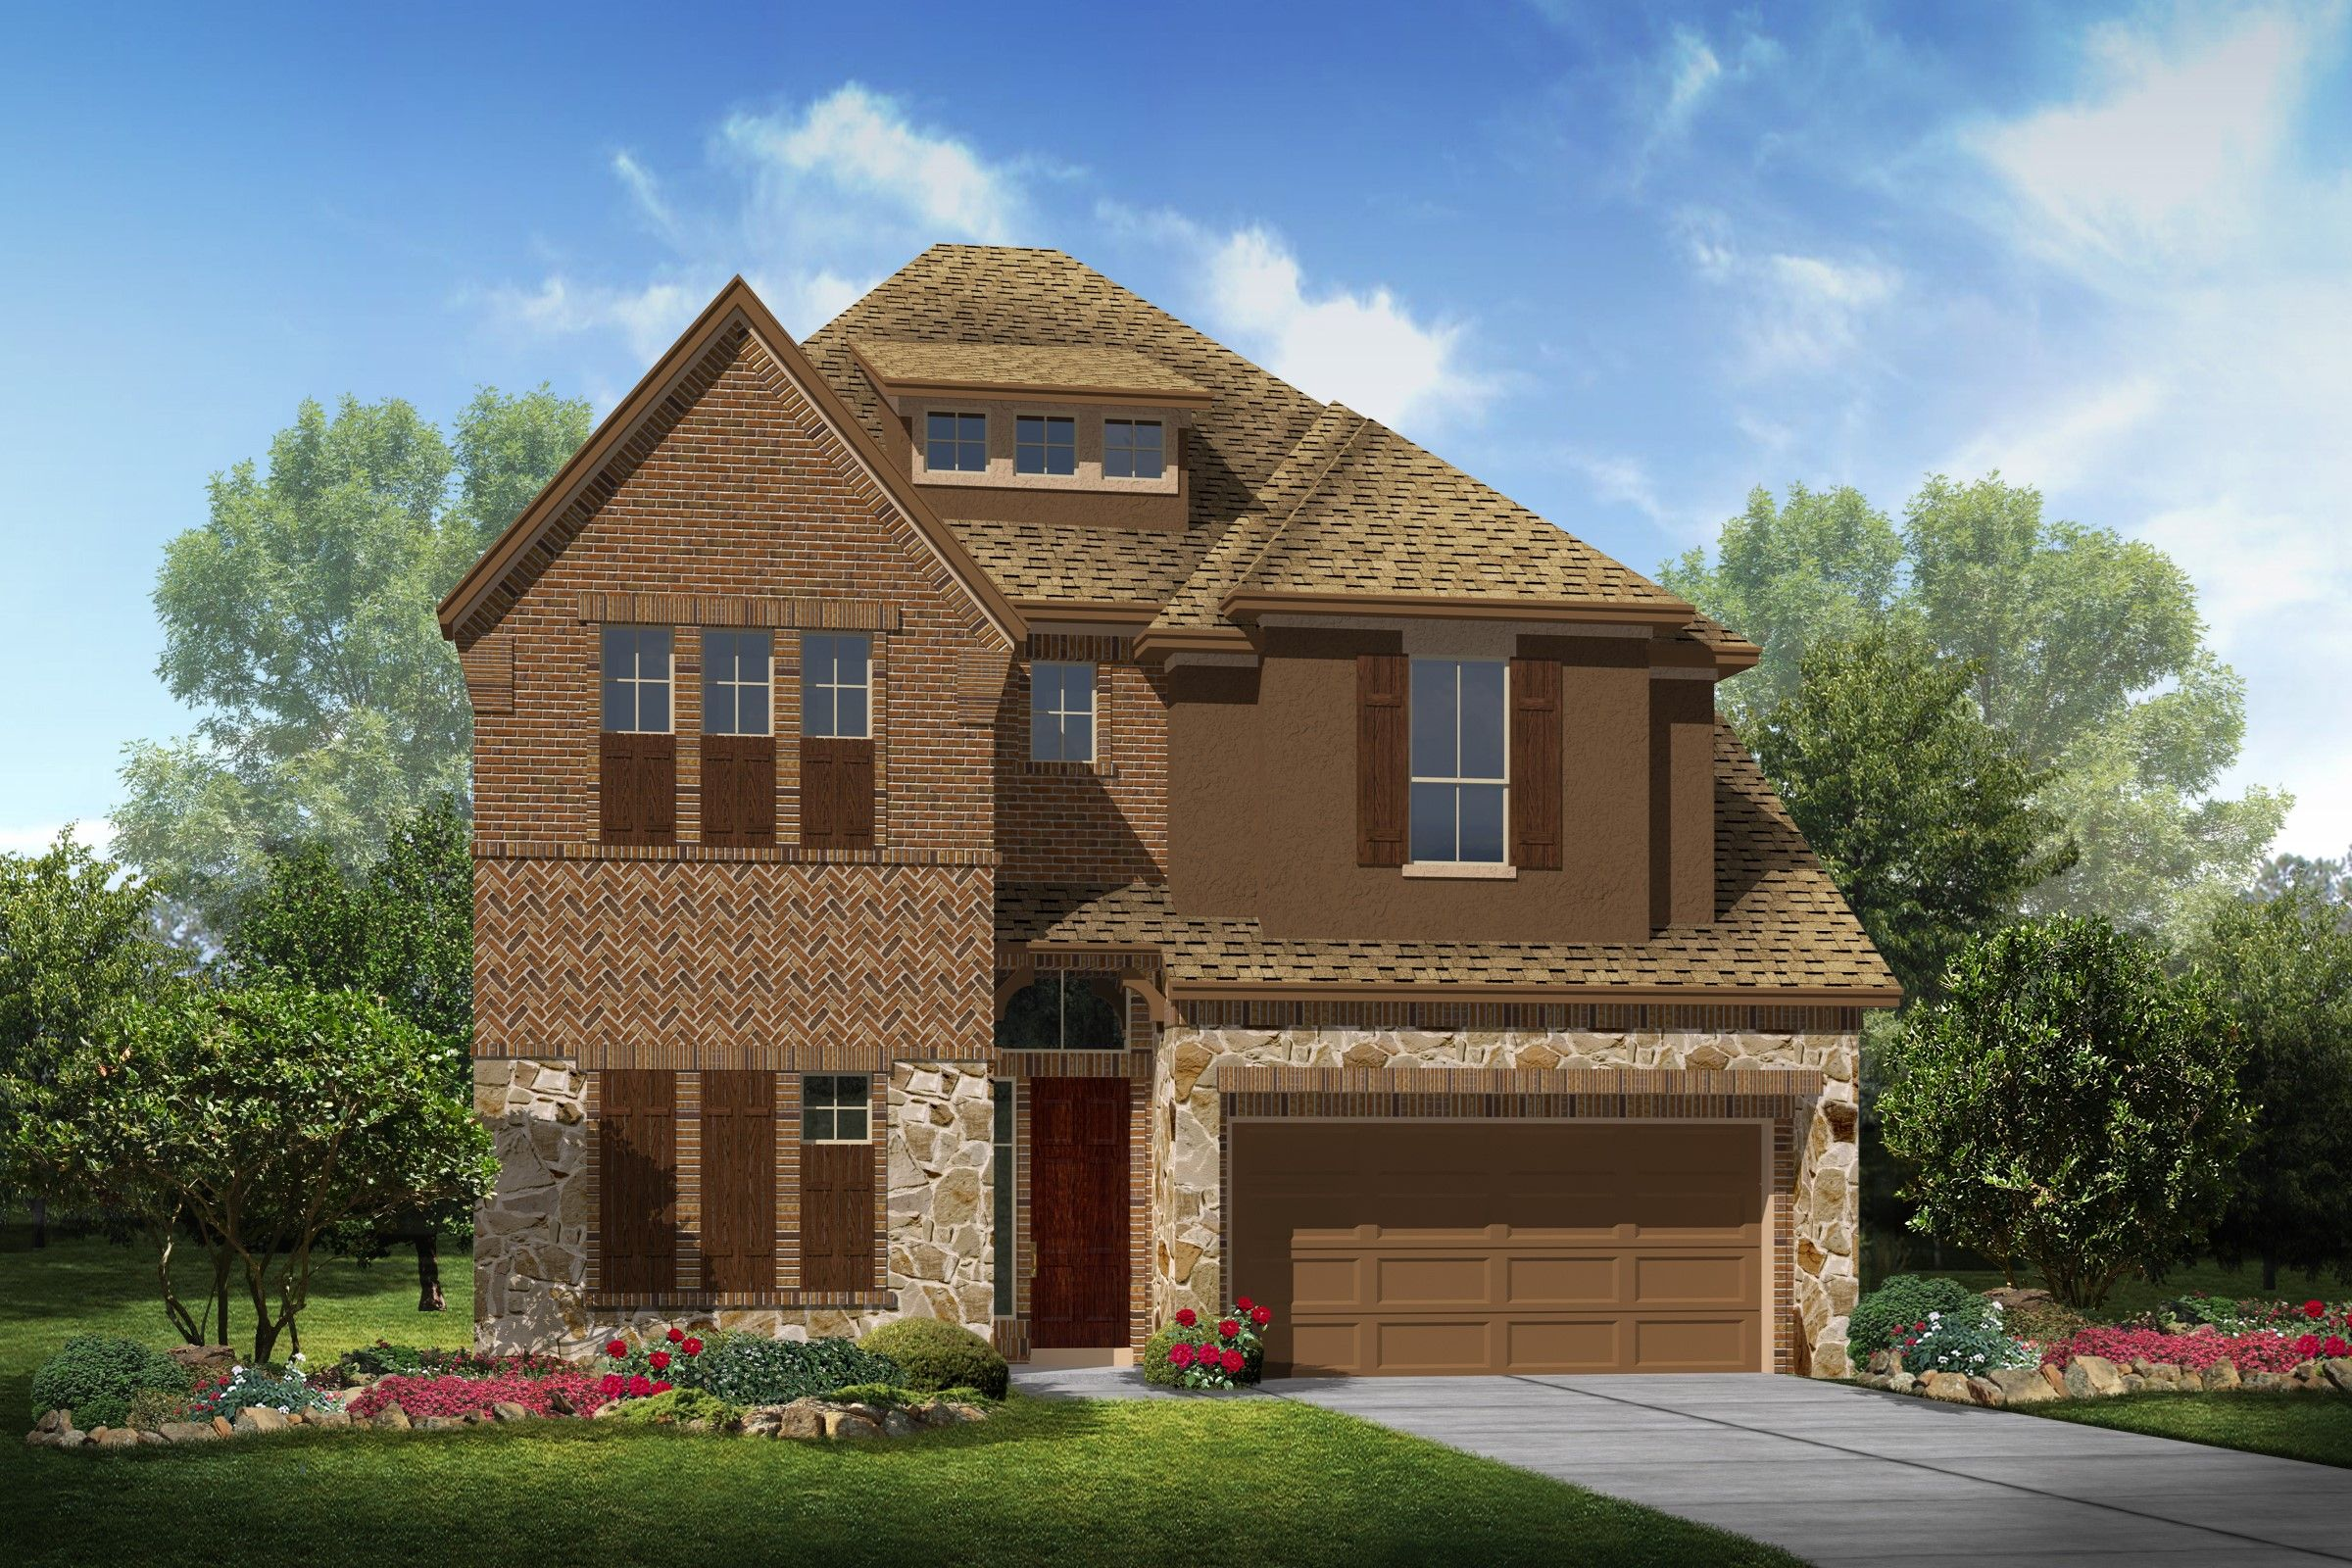 Single Family for Sale at Parkway Terrace - Bradford 2109 Westbourne Park Drive Houston, Texas 77077 United States